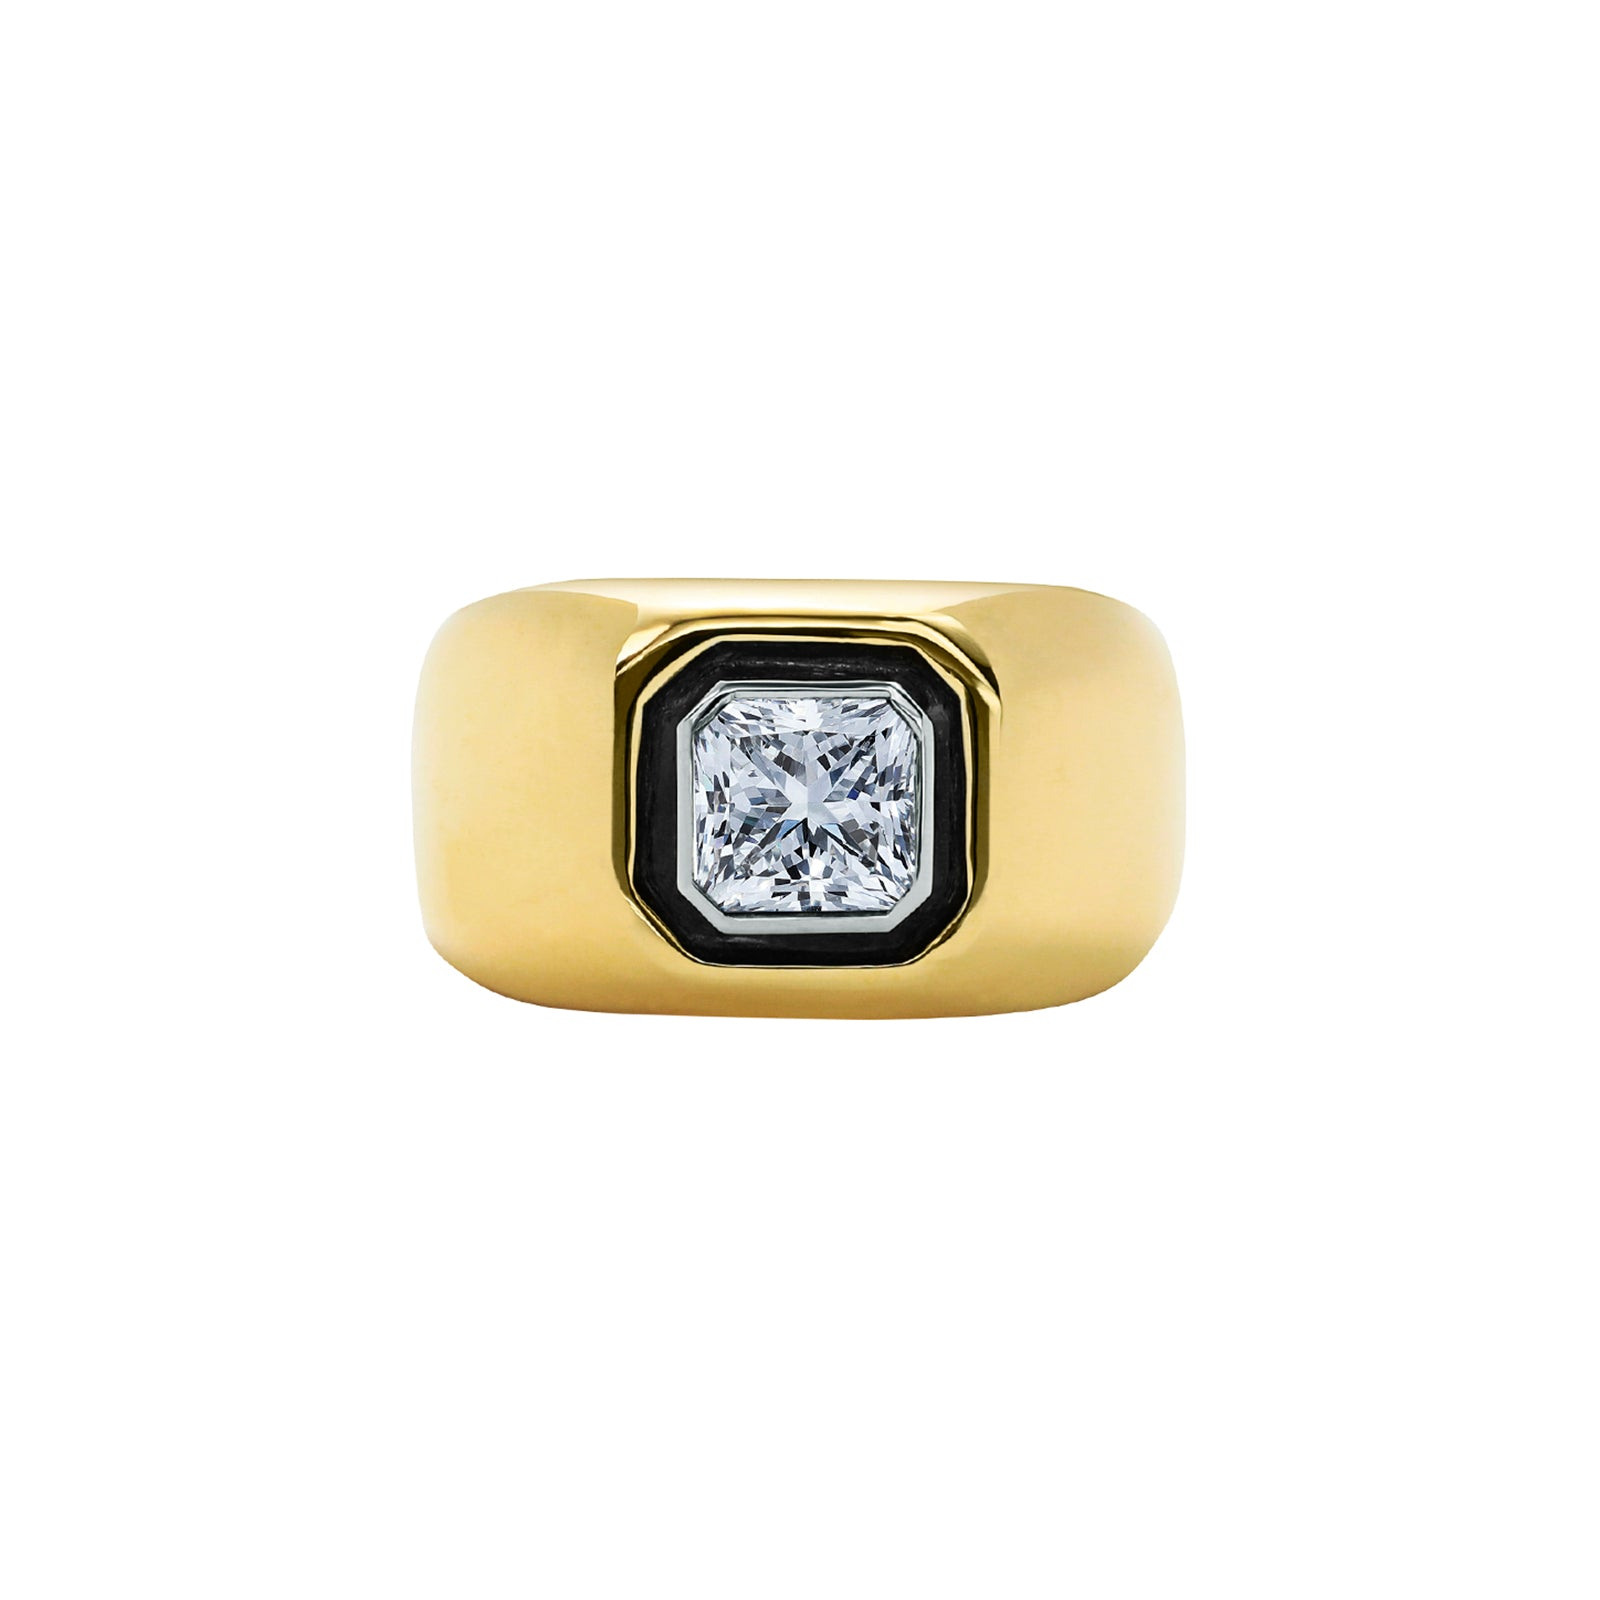 Nina Runsdorf All That Is Radiant Cut Diamond Pinky Ring - Rings - Broken English Jewelry